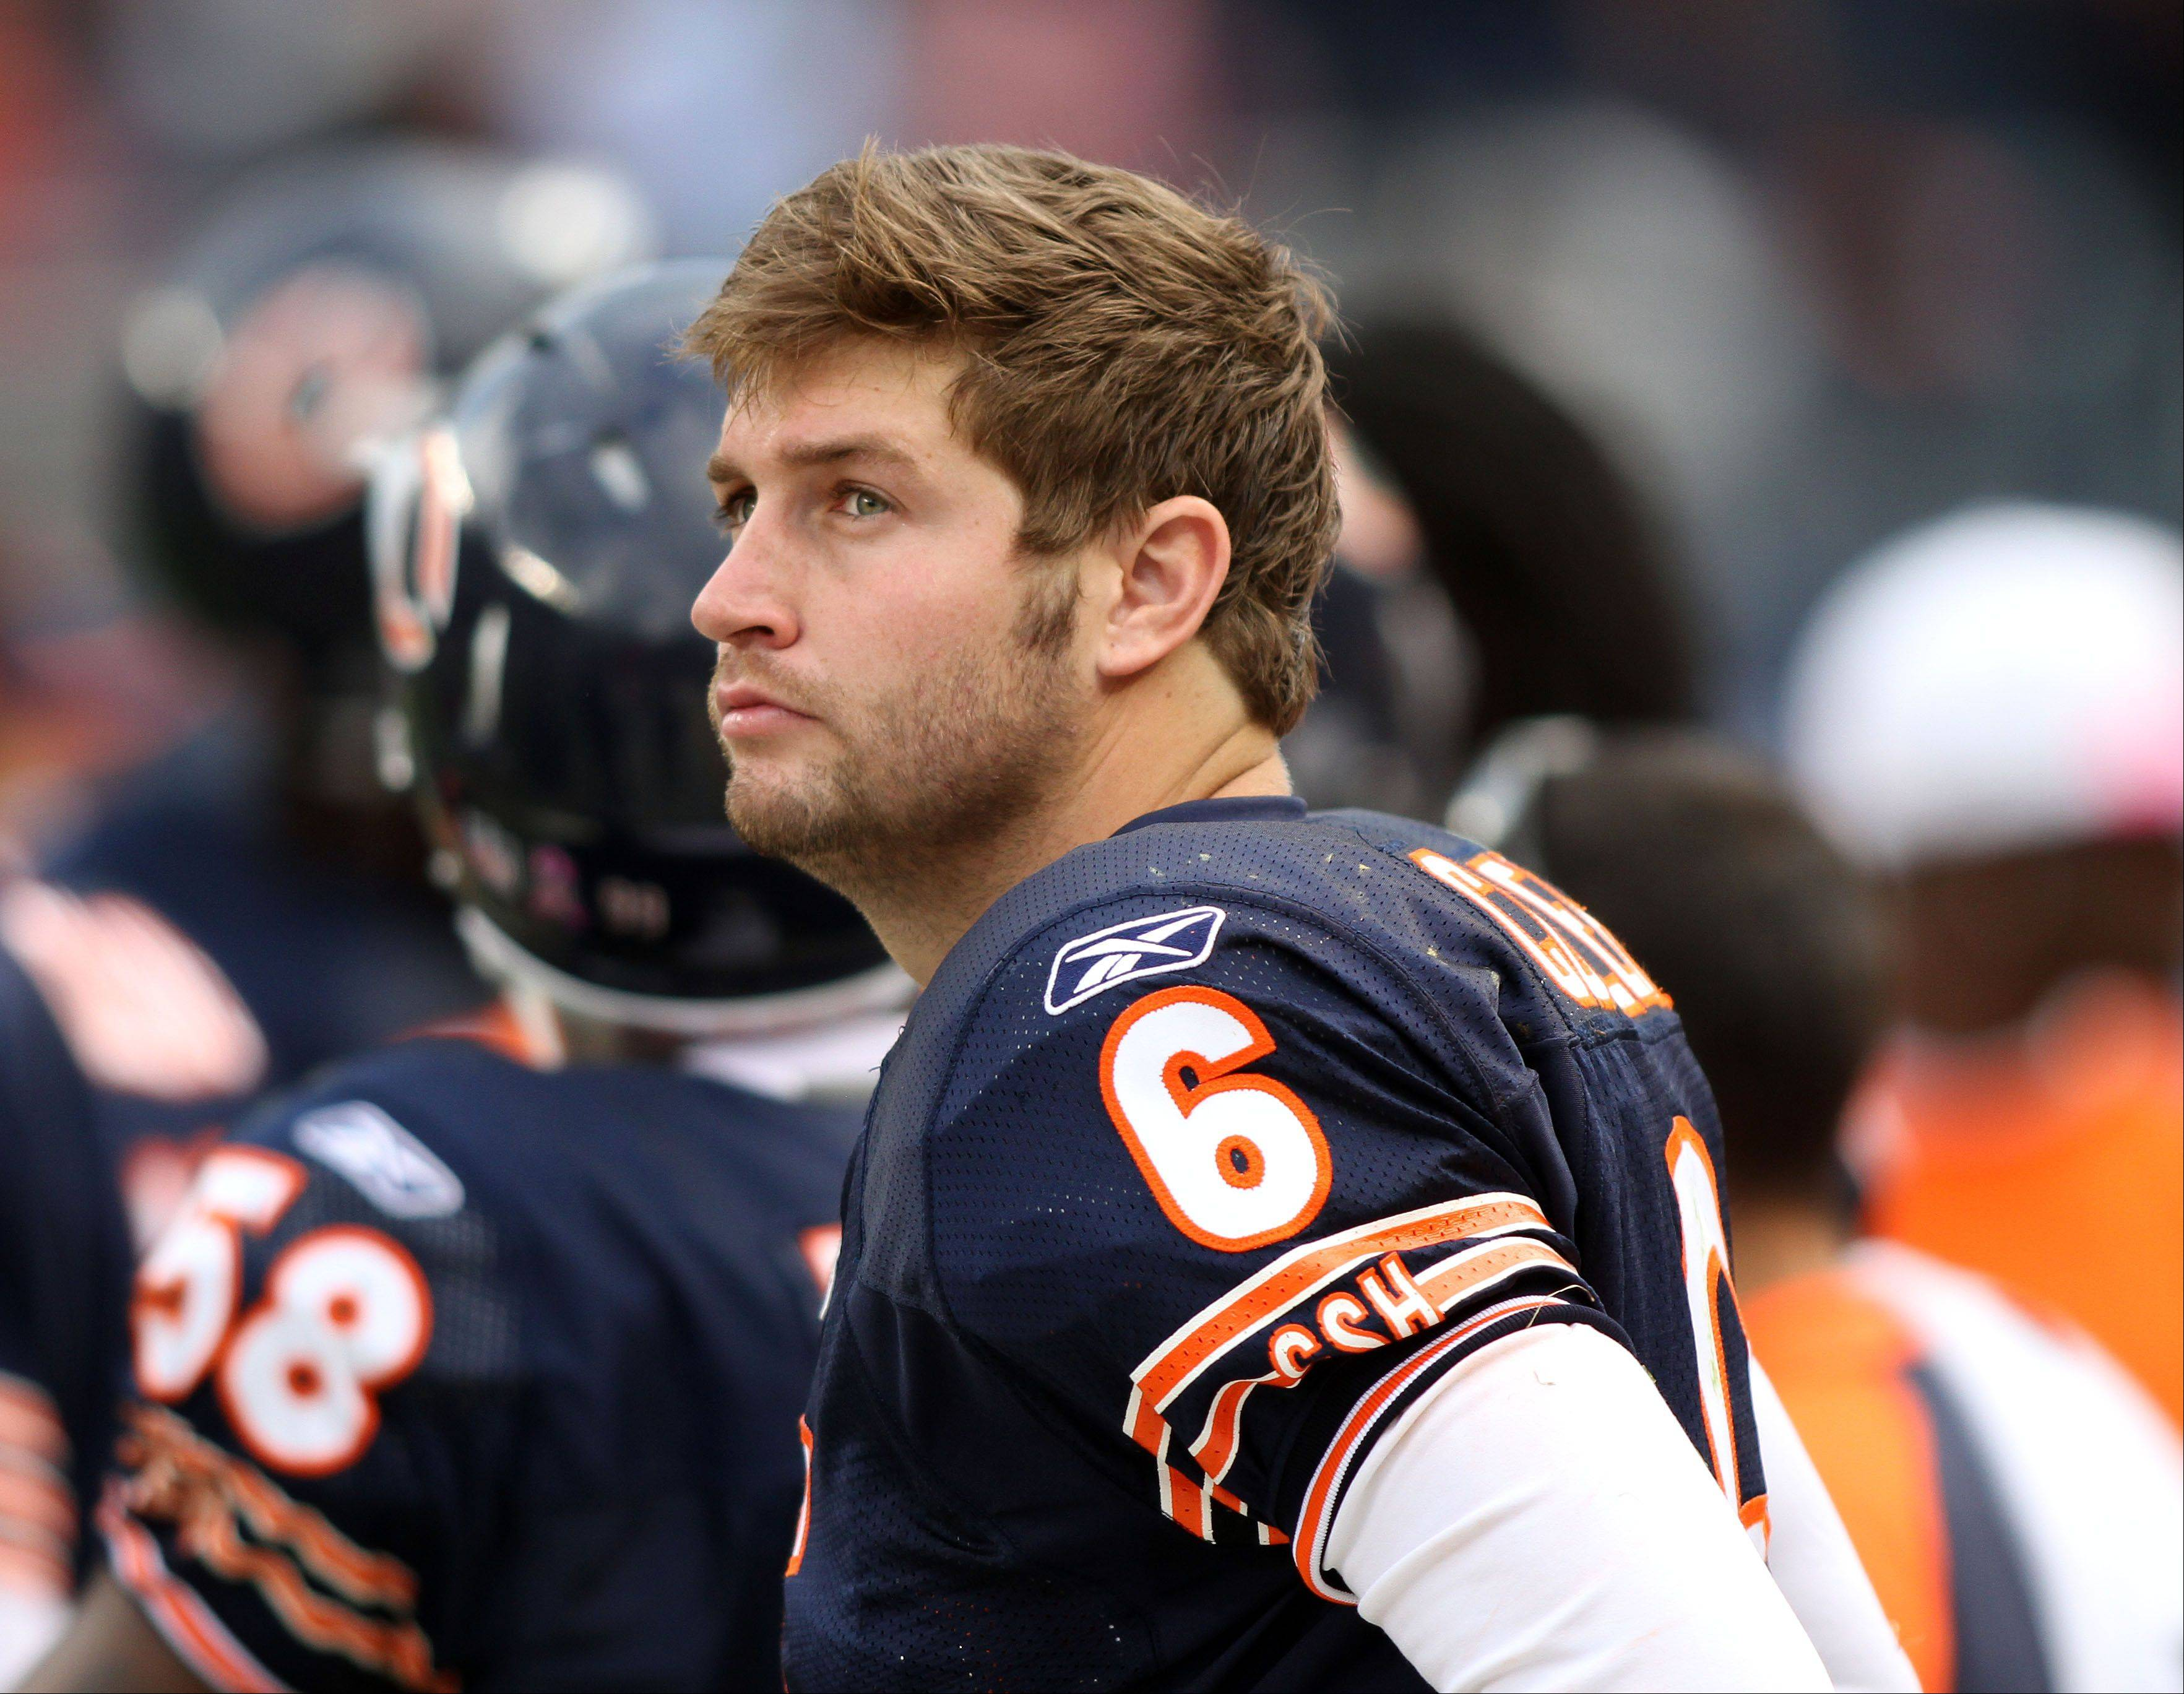 "Chicago Bears quarterback Jay Cutler has yet to practice but says he feels like he's going to be back on the field soon. ""I want to play. There's no doubt about it,"" Cutler says. ""It's just the trainers and the doctors and going through the scenario we have to go through."""